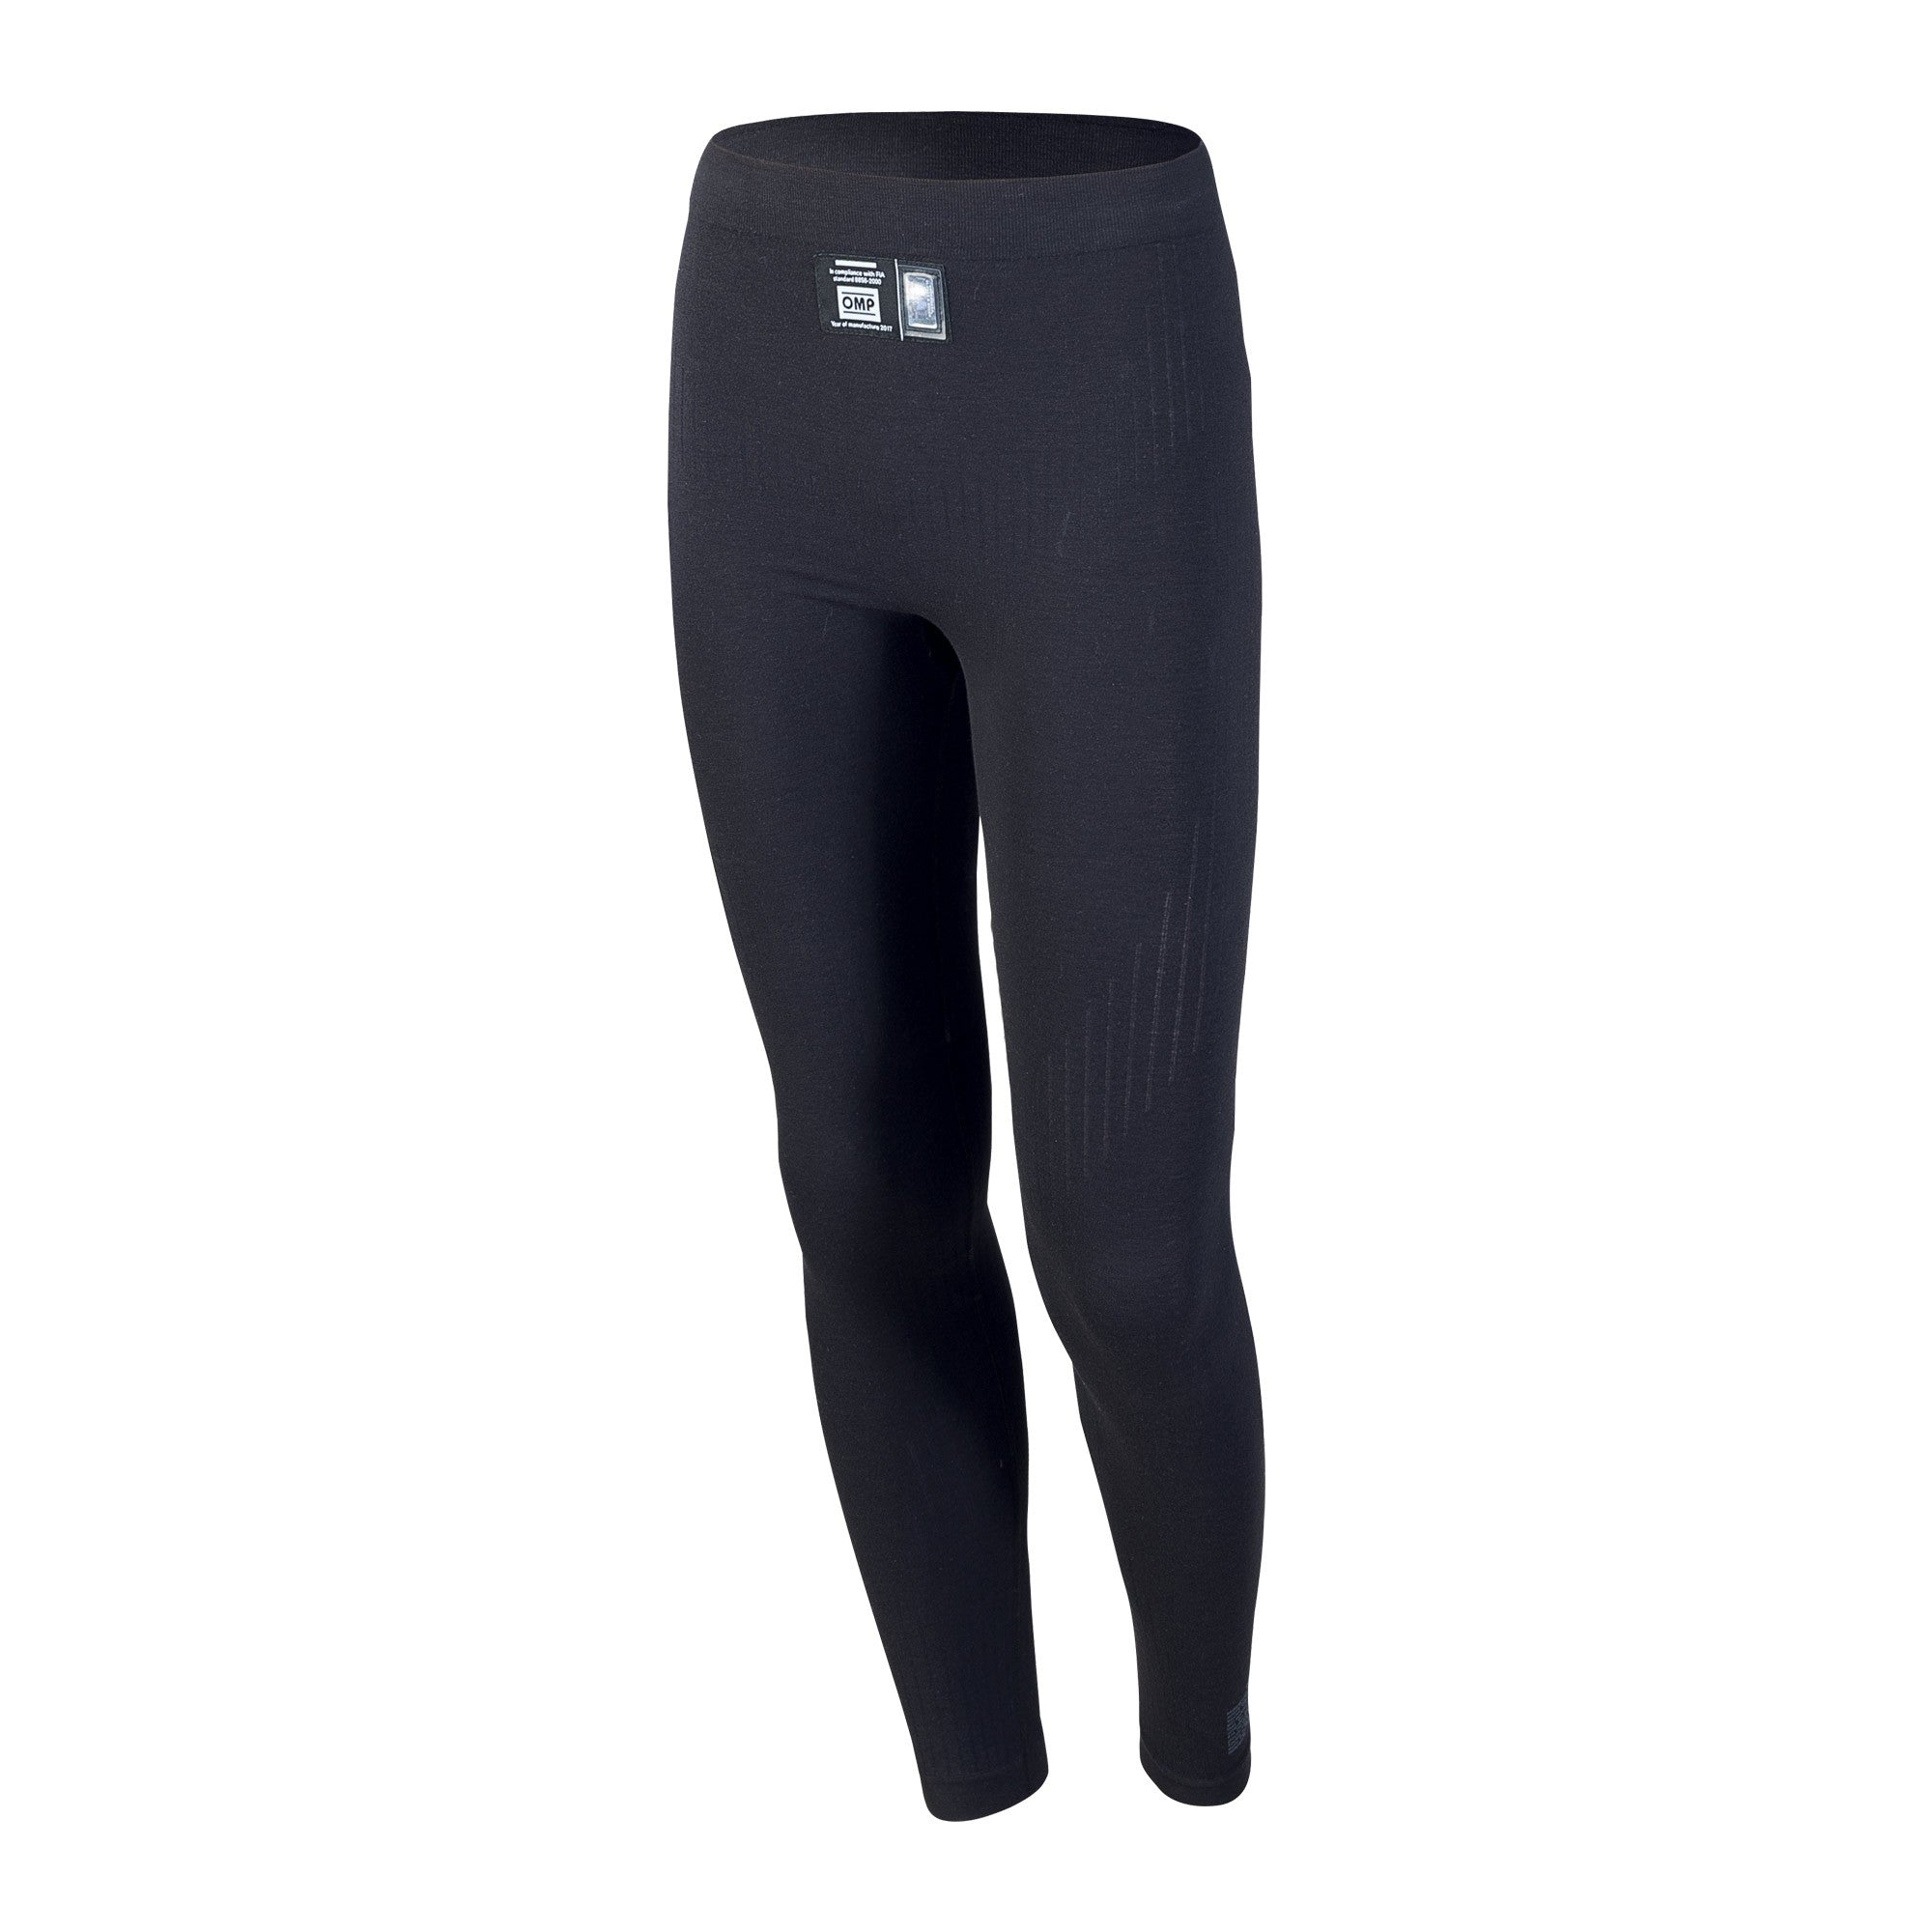 OMP Tecnica Pants - Saferacer